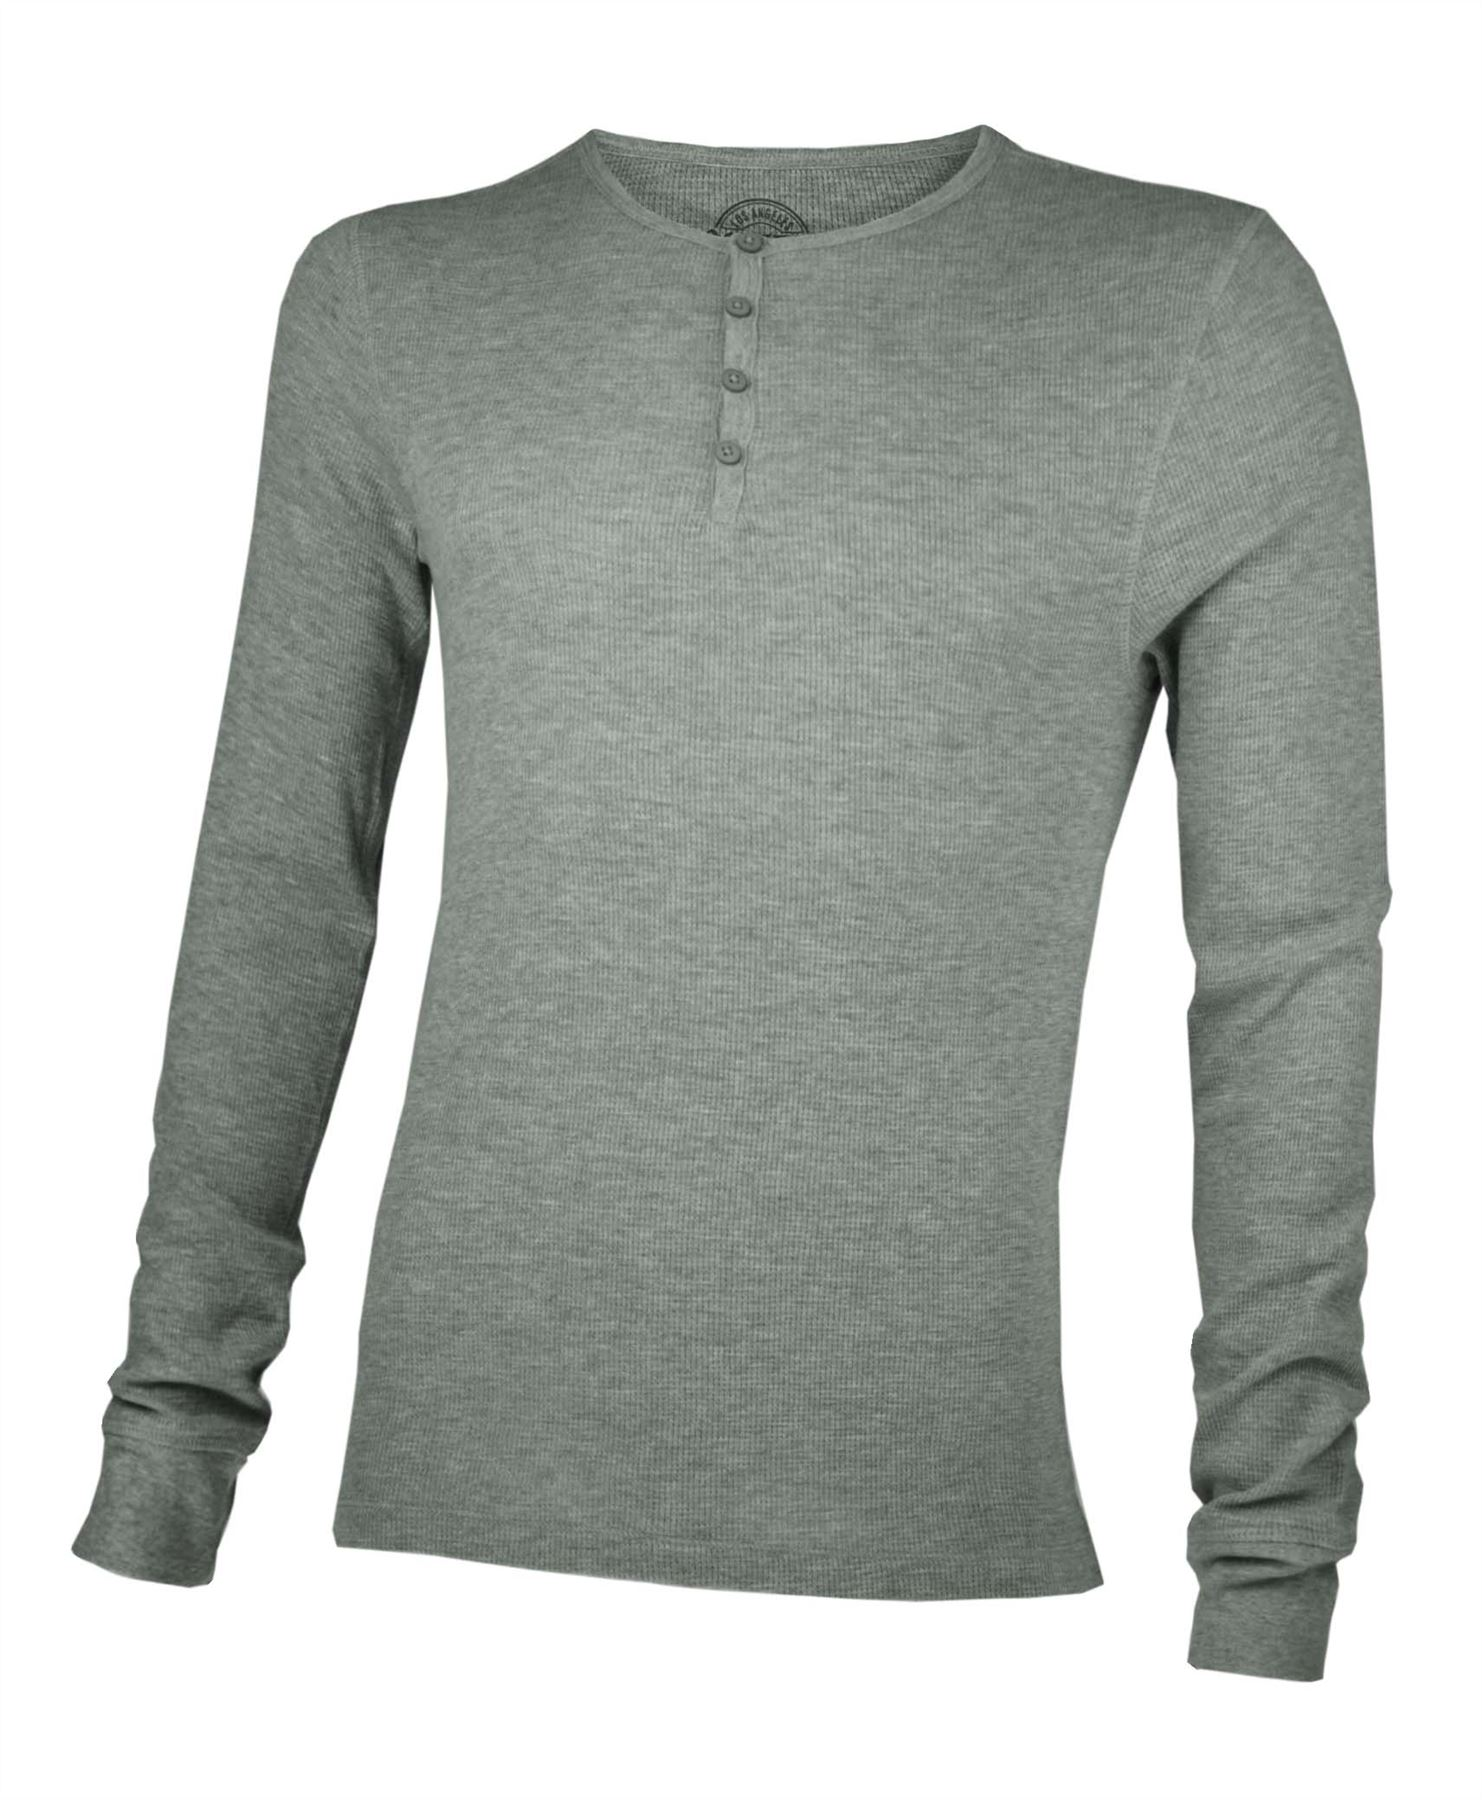 Mens long sleeve waffle thermal button top sweatshirt Thermal t shirt long sleeve